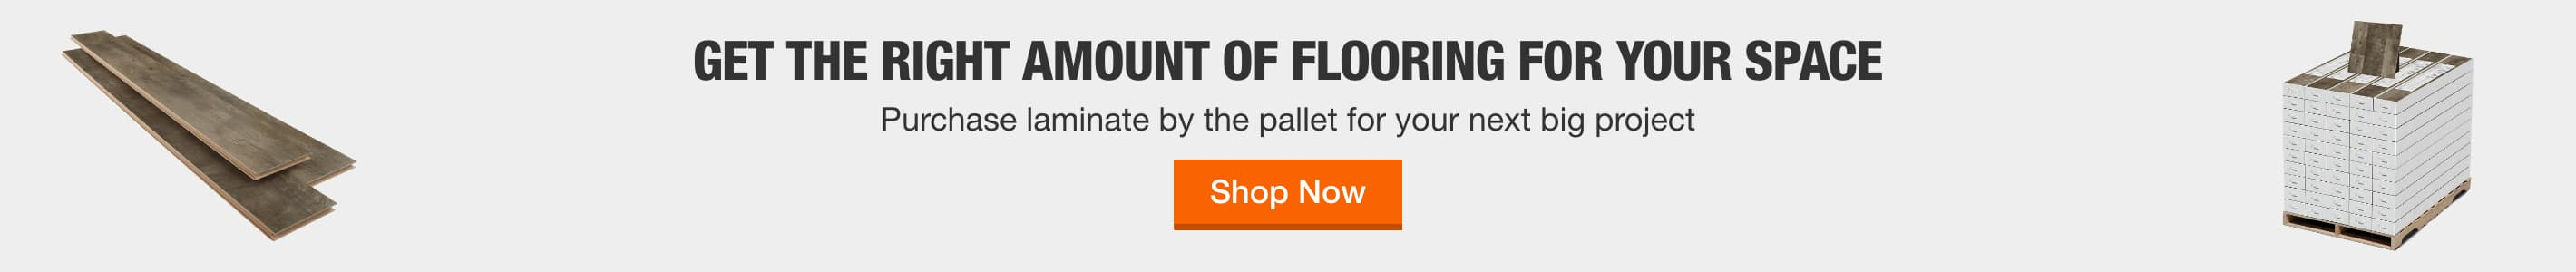 GET THE RIGHT AMOUNT OF FLOORING FOR YOUR SPACE    Purchase laminate by the pallet for your next big project